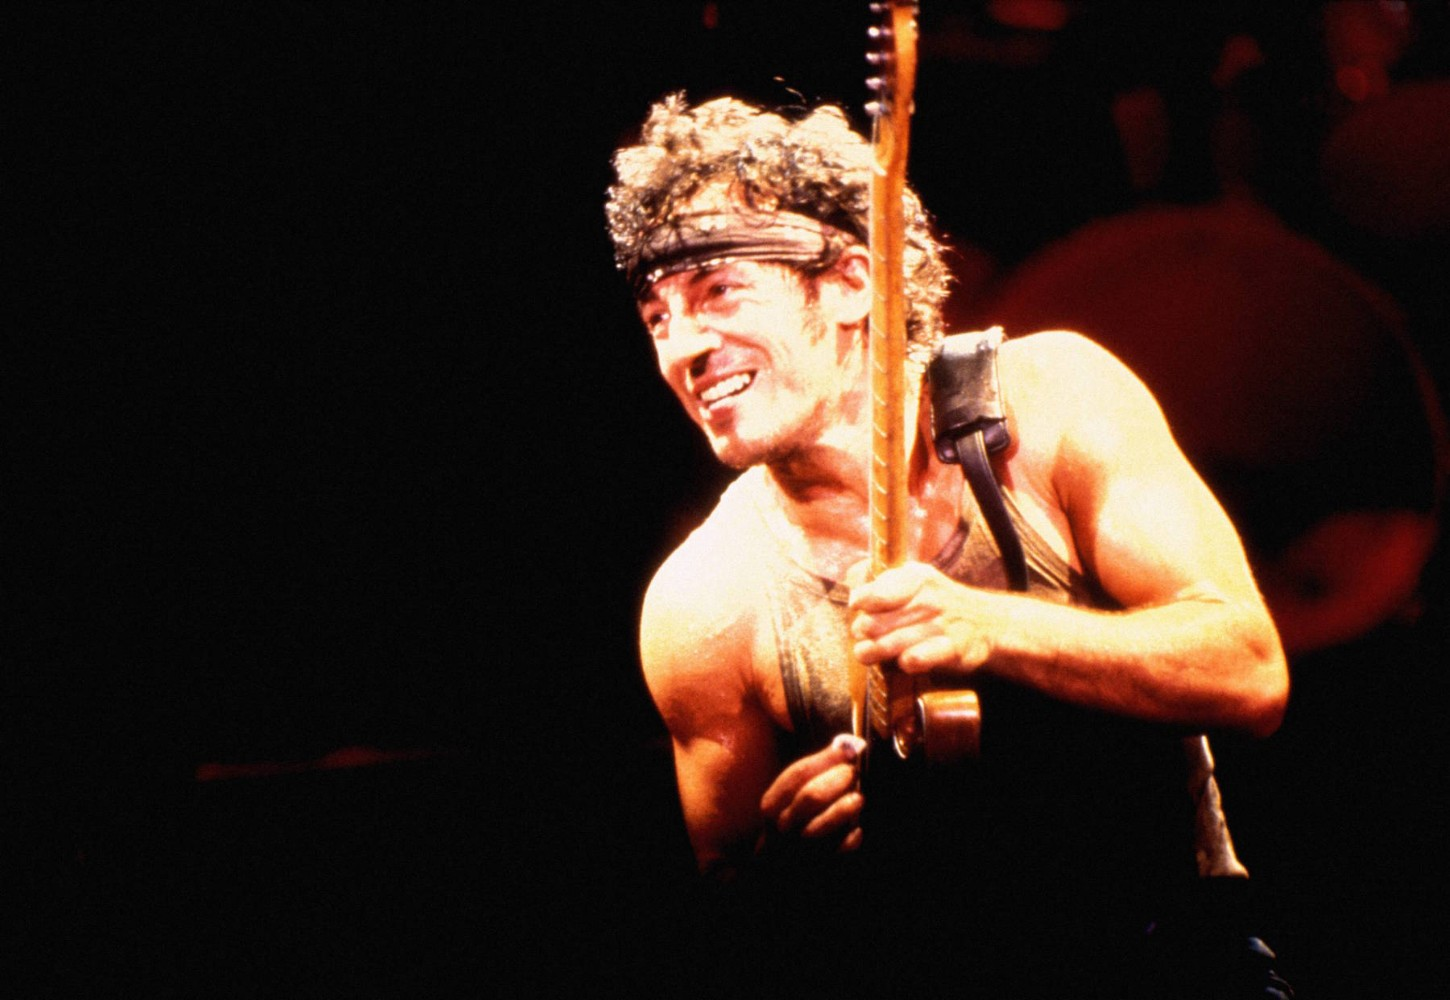 'Oh No, You Too?': Convincing Myself, In Favor of the Odds, to Like Bruce Springsteen